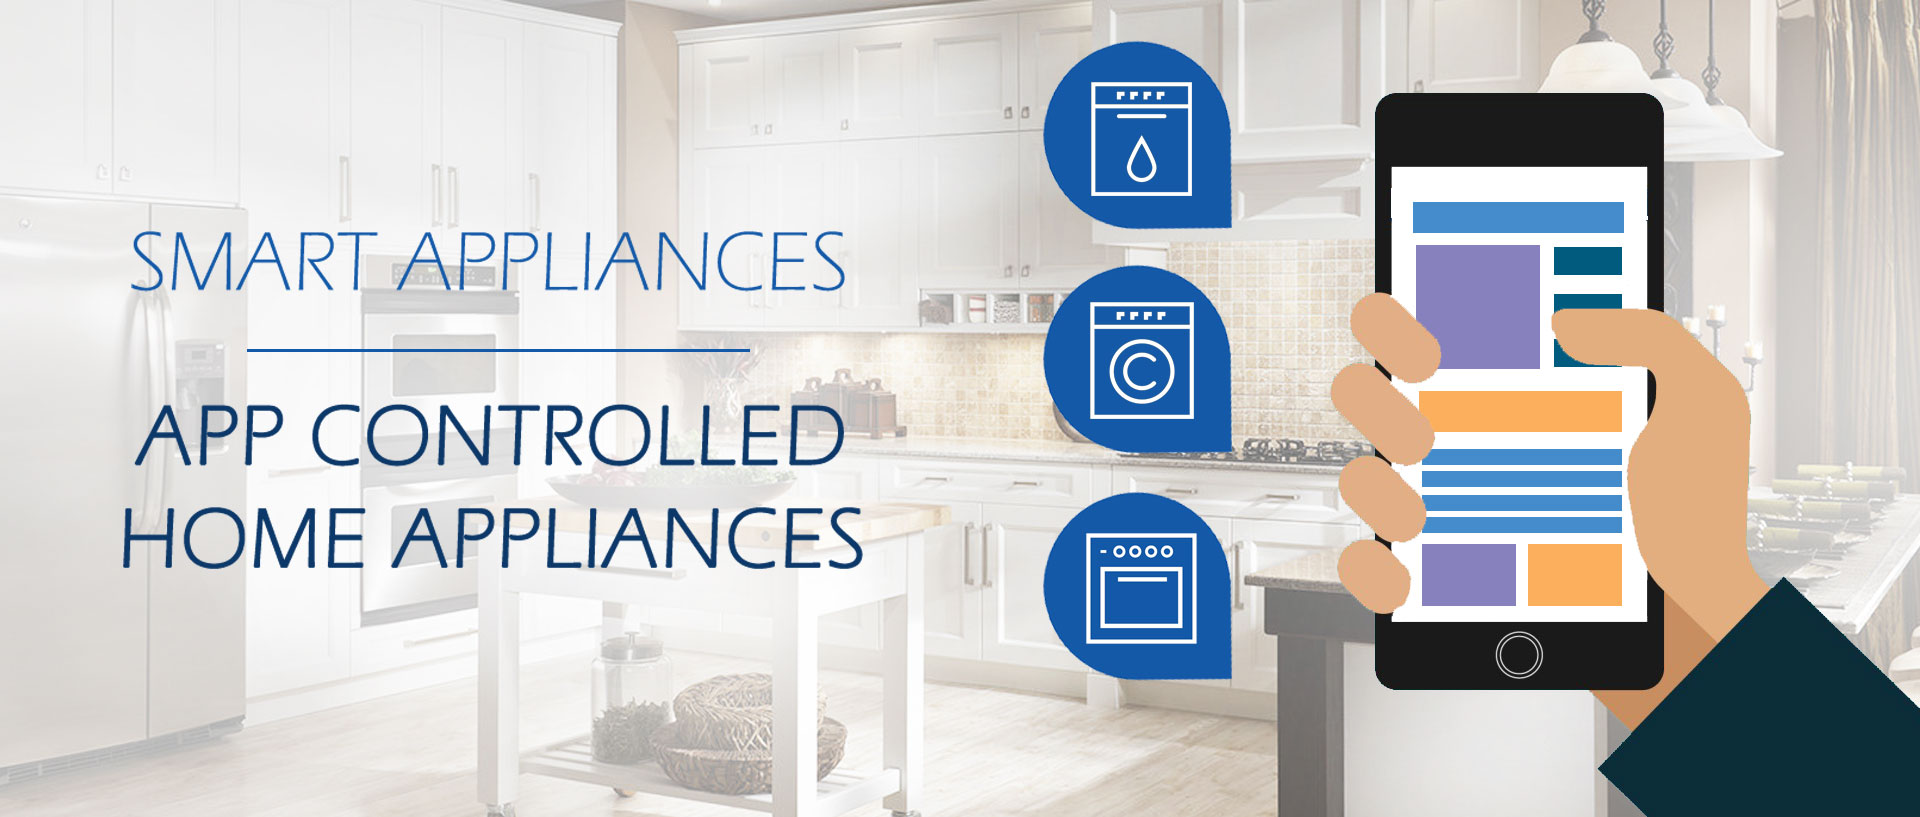 Smart Appliances with App Connectivity: Convenient, Easy to Use and Cost Effective